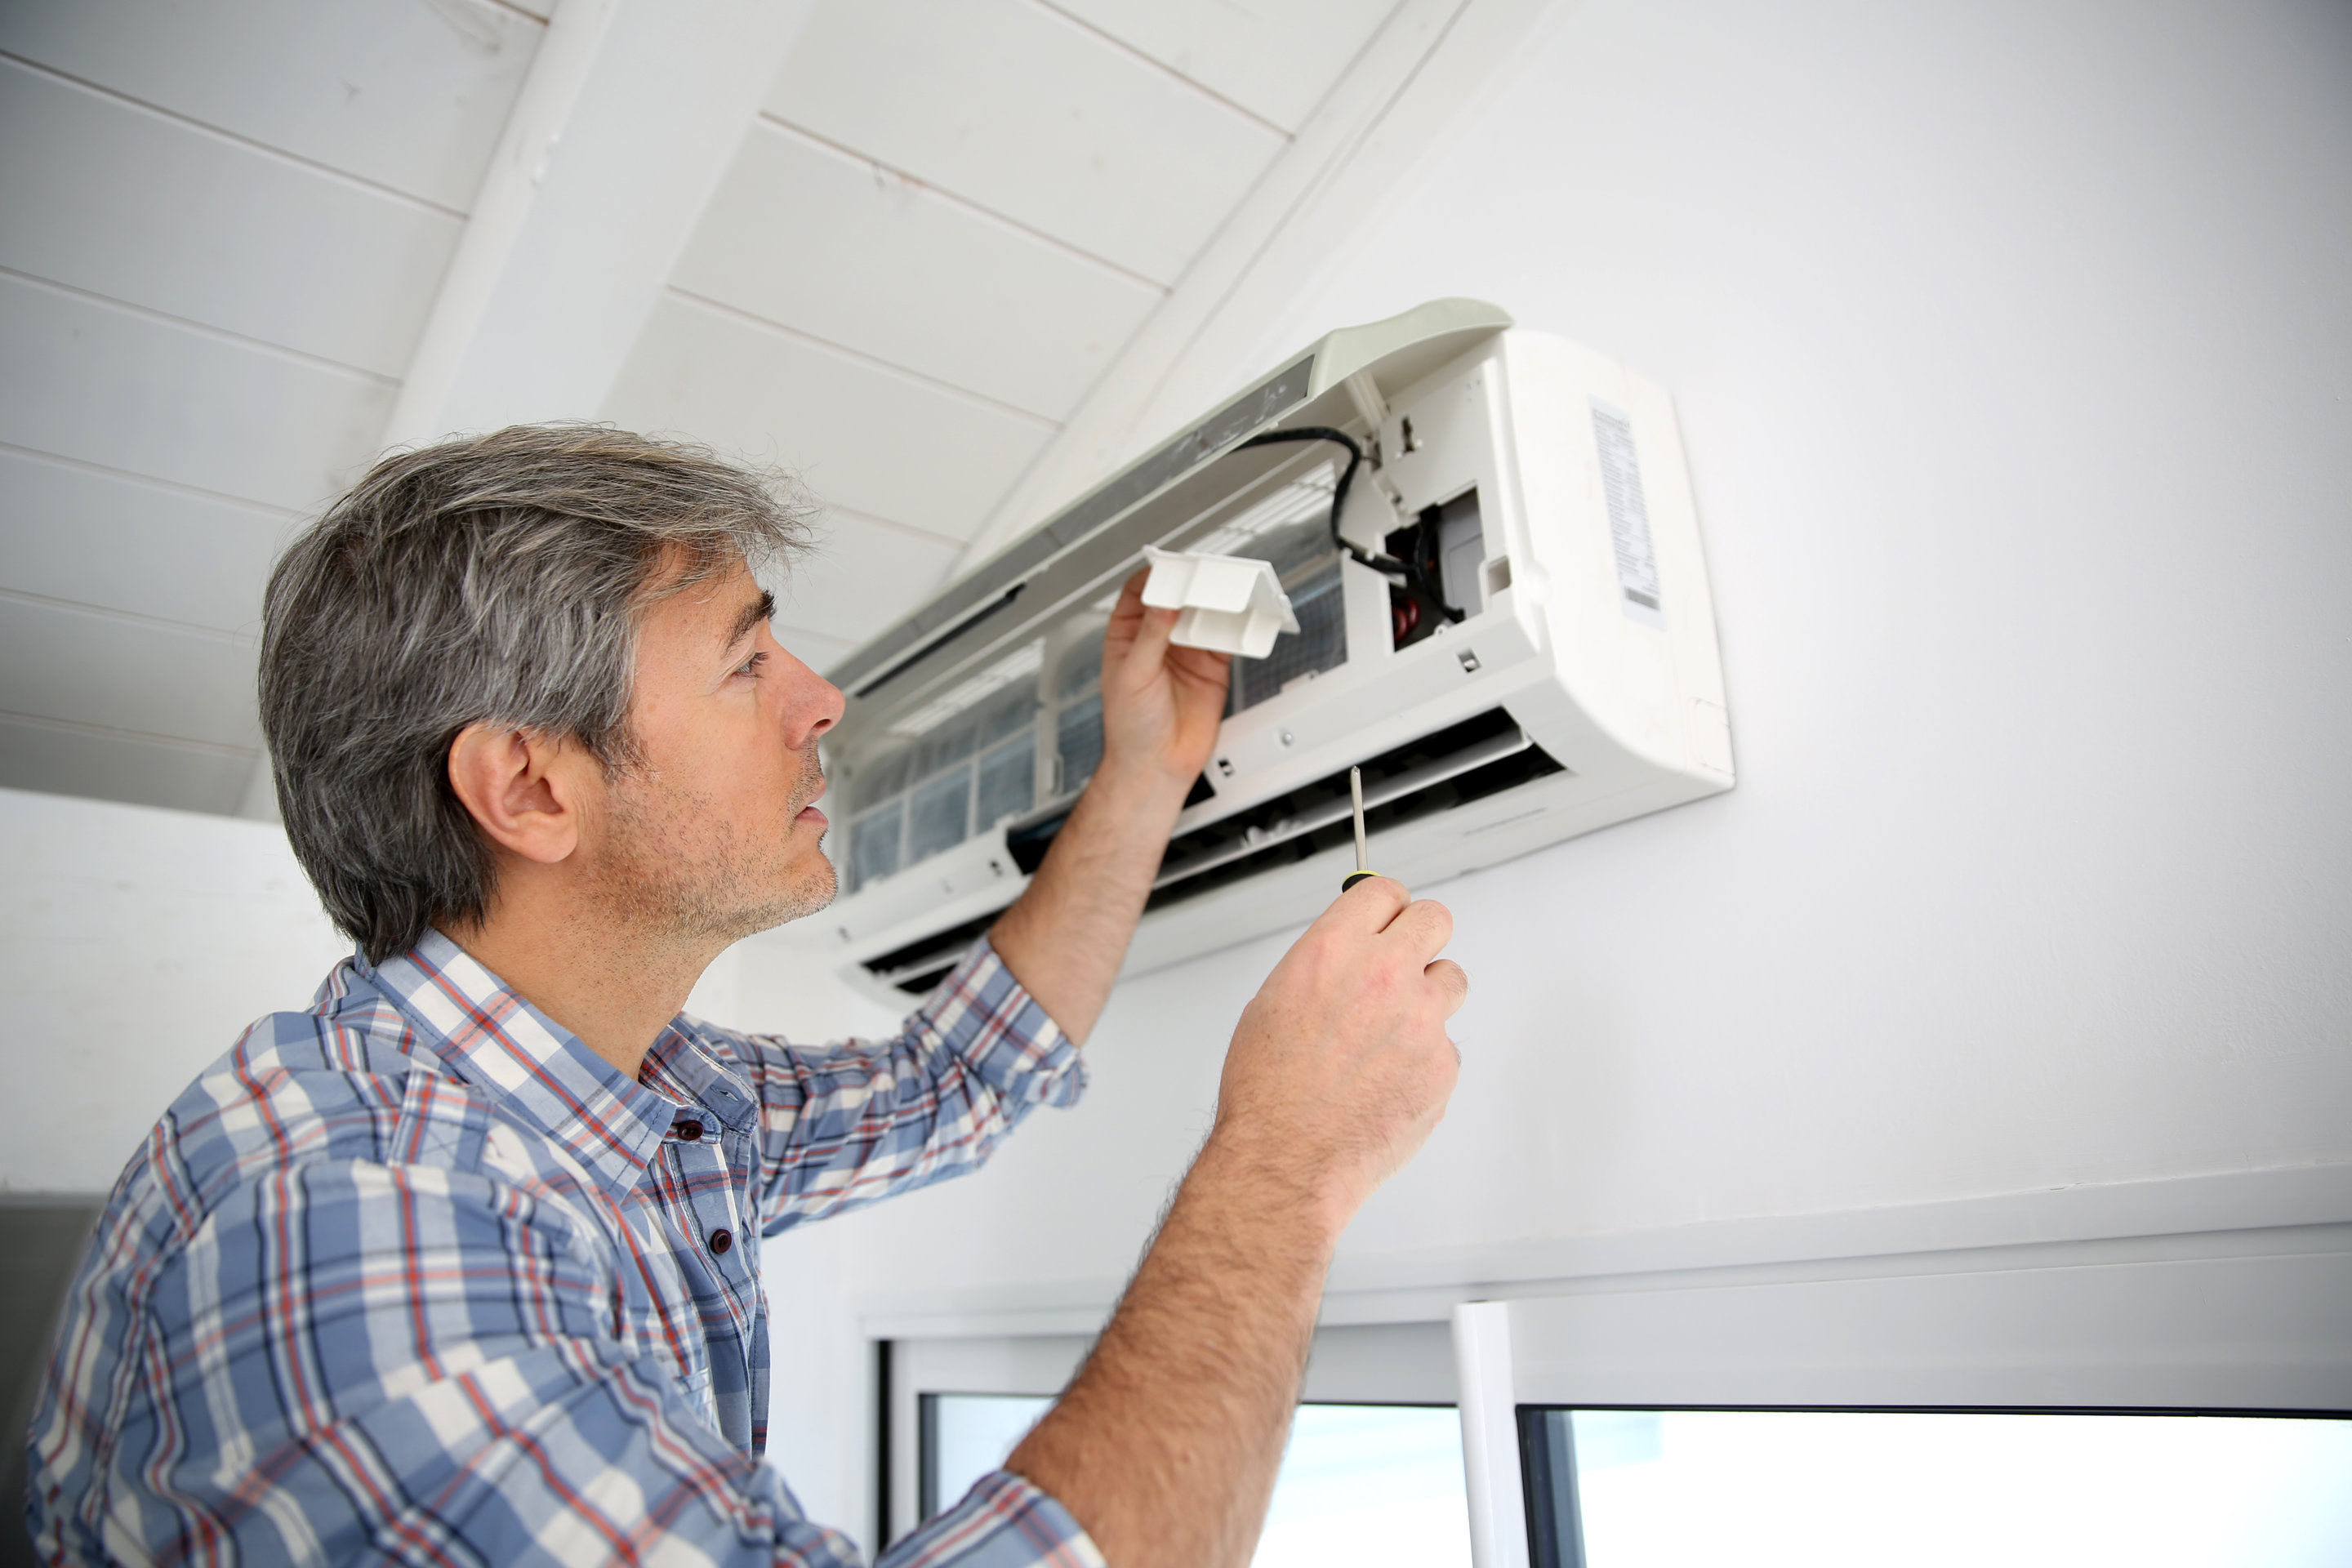 diy air conditioner maintenance for the summer - brisbane air